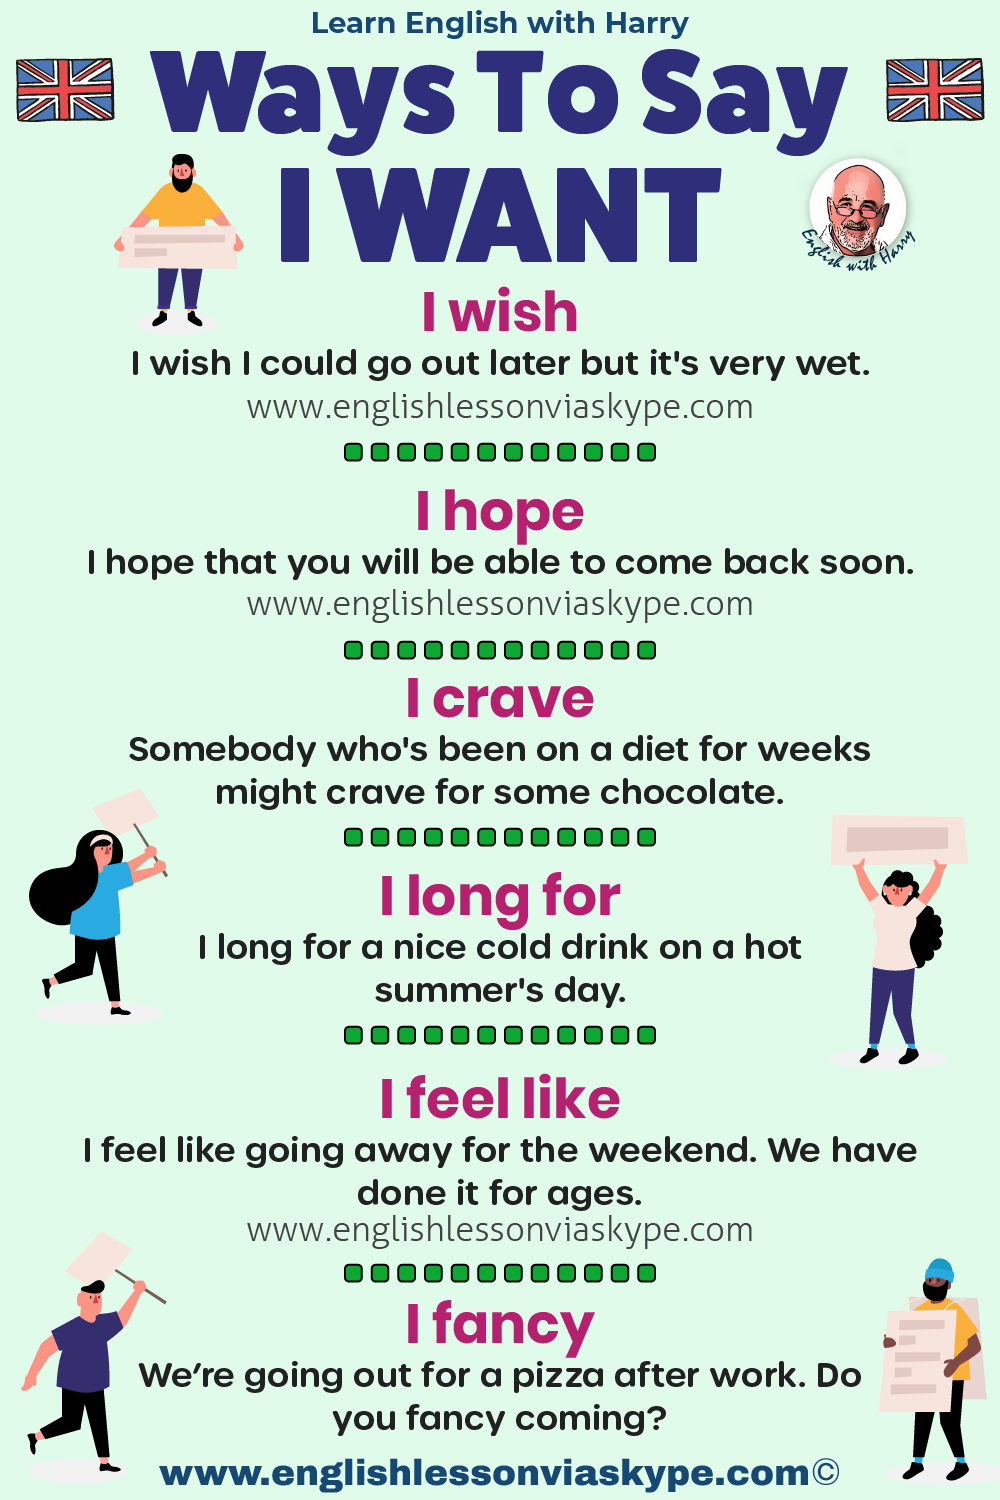 Ways to say I want in English. Advanced English learning. English lessons on Zoom at www.englishlessonviaskype.com #learnenglish #englishlessons #EnglishTeacher #vocabulary #ingles